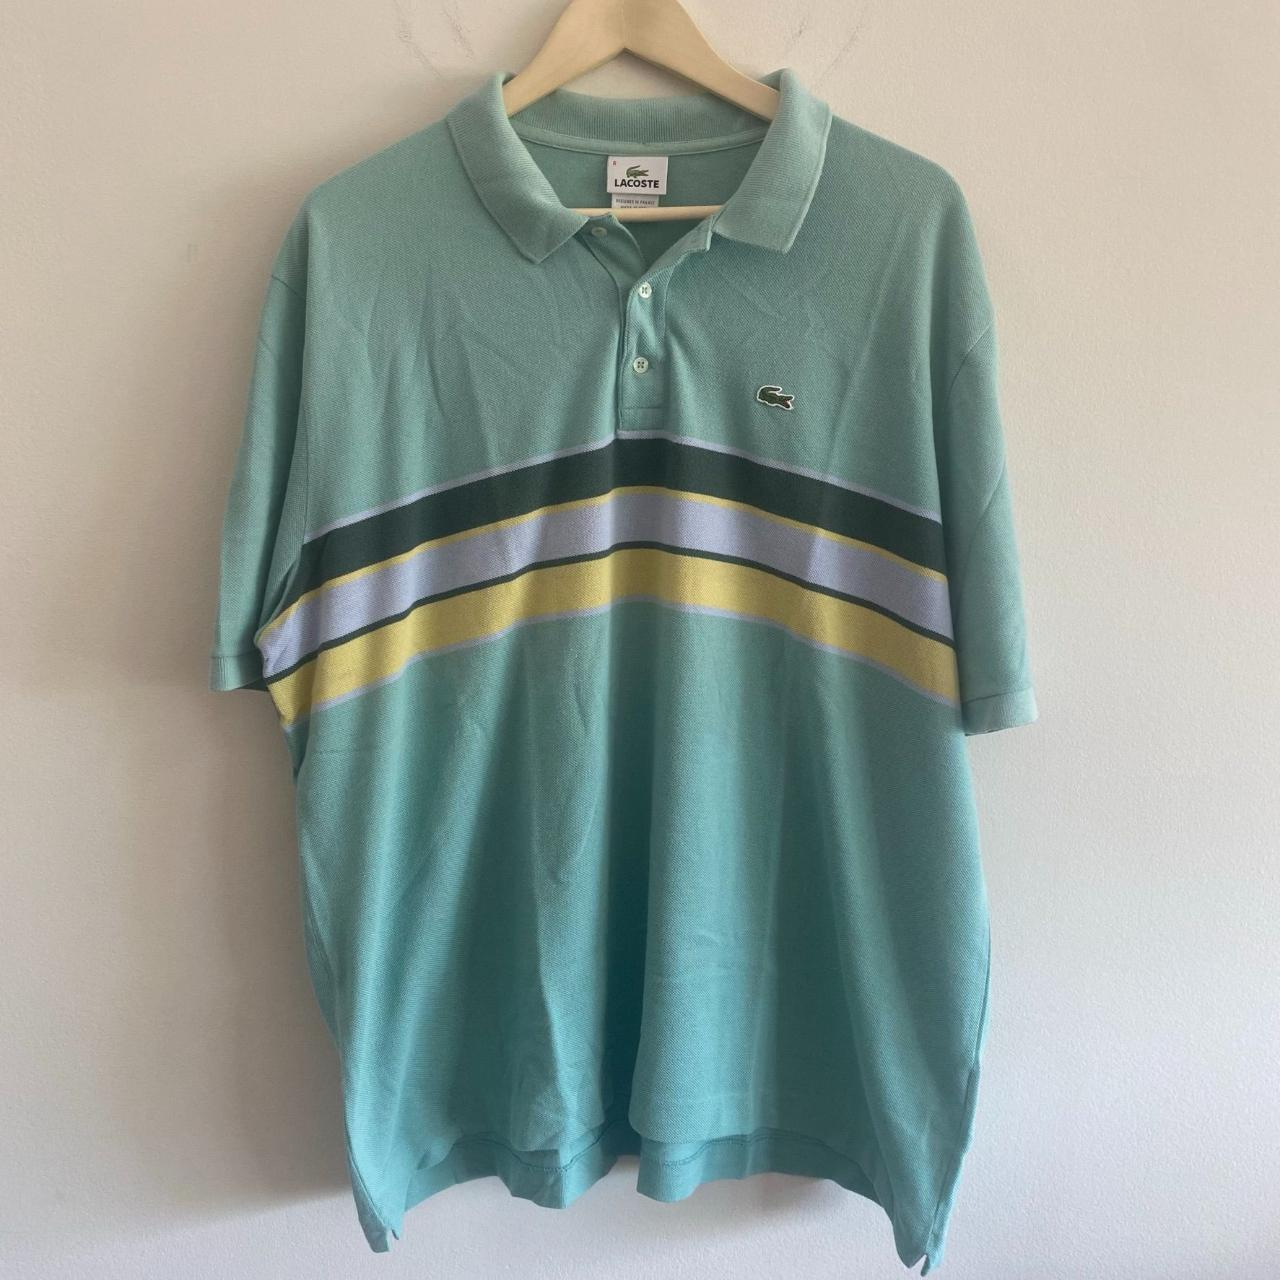 Product Image 1 - Mint Striped Lacoste Polo Shirt Size: